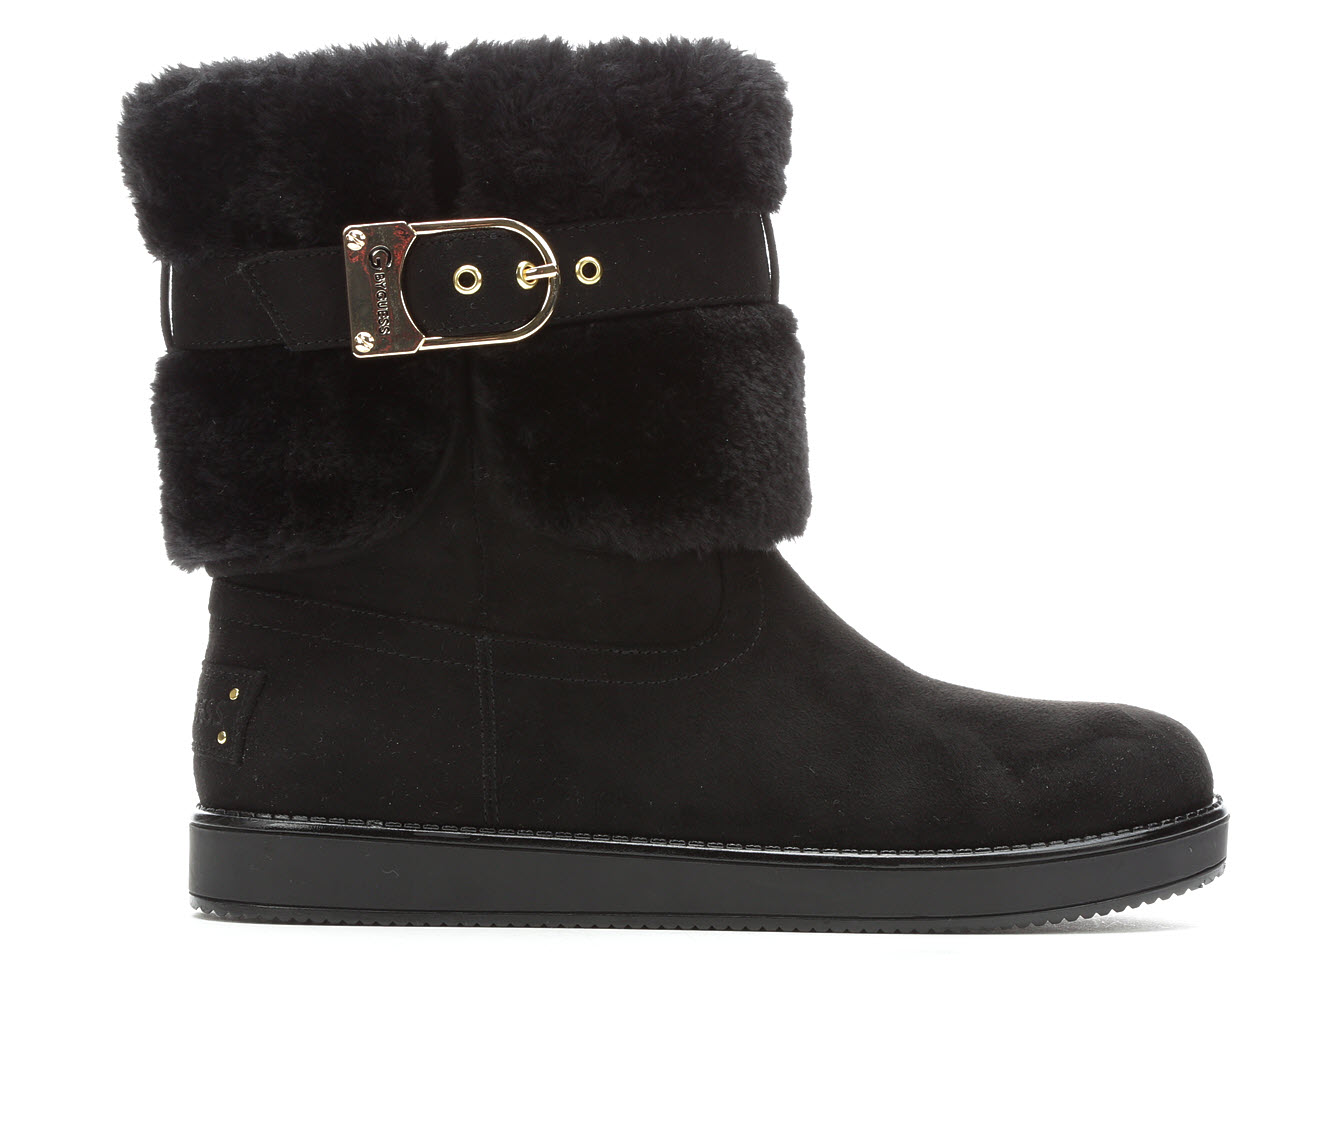 G By Guess Aussie Women's Boots (Black - Canvas)